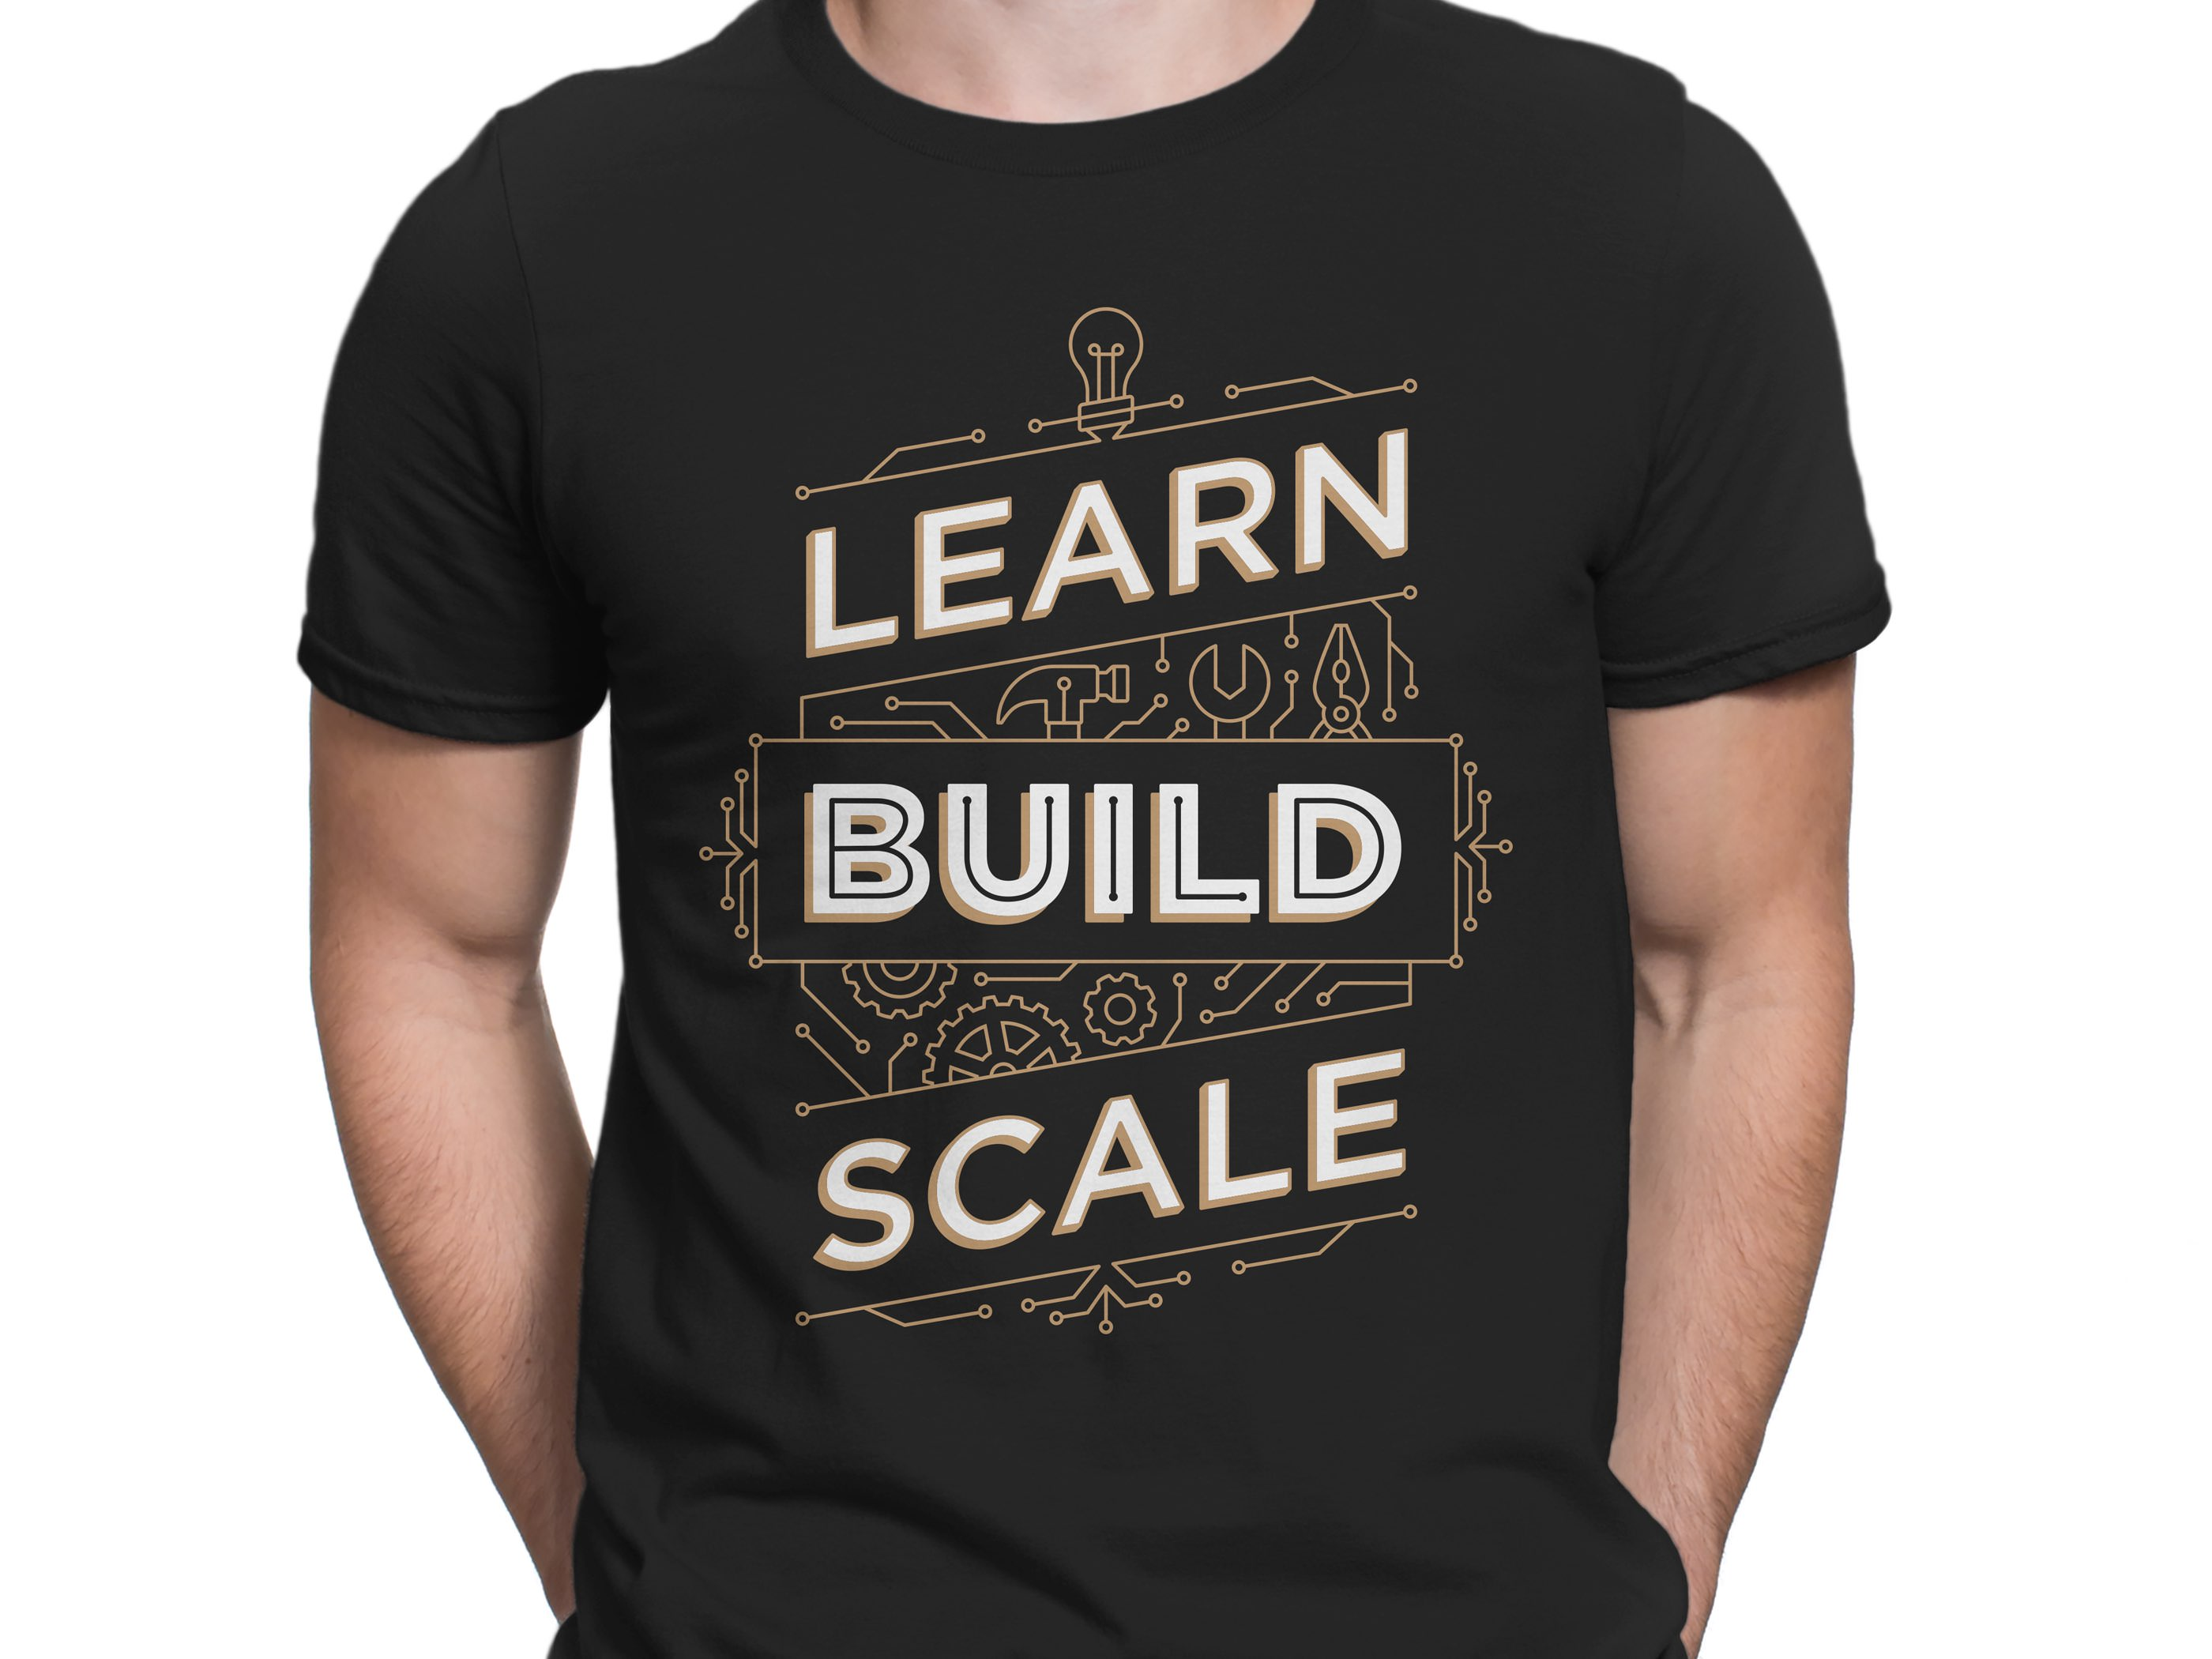 Learn Build Scale Shirt